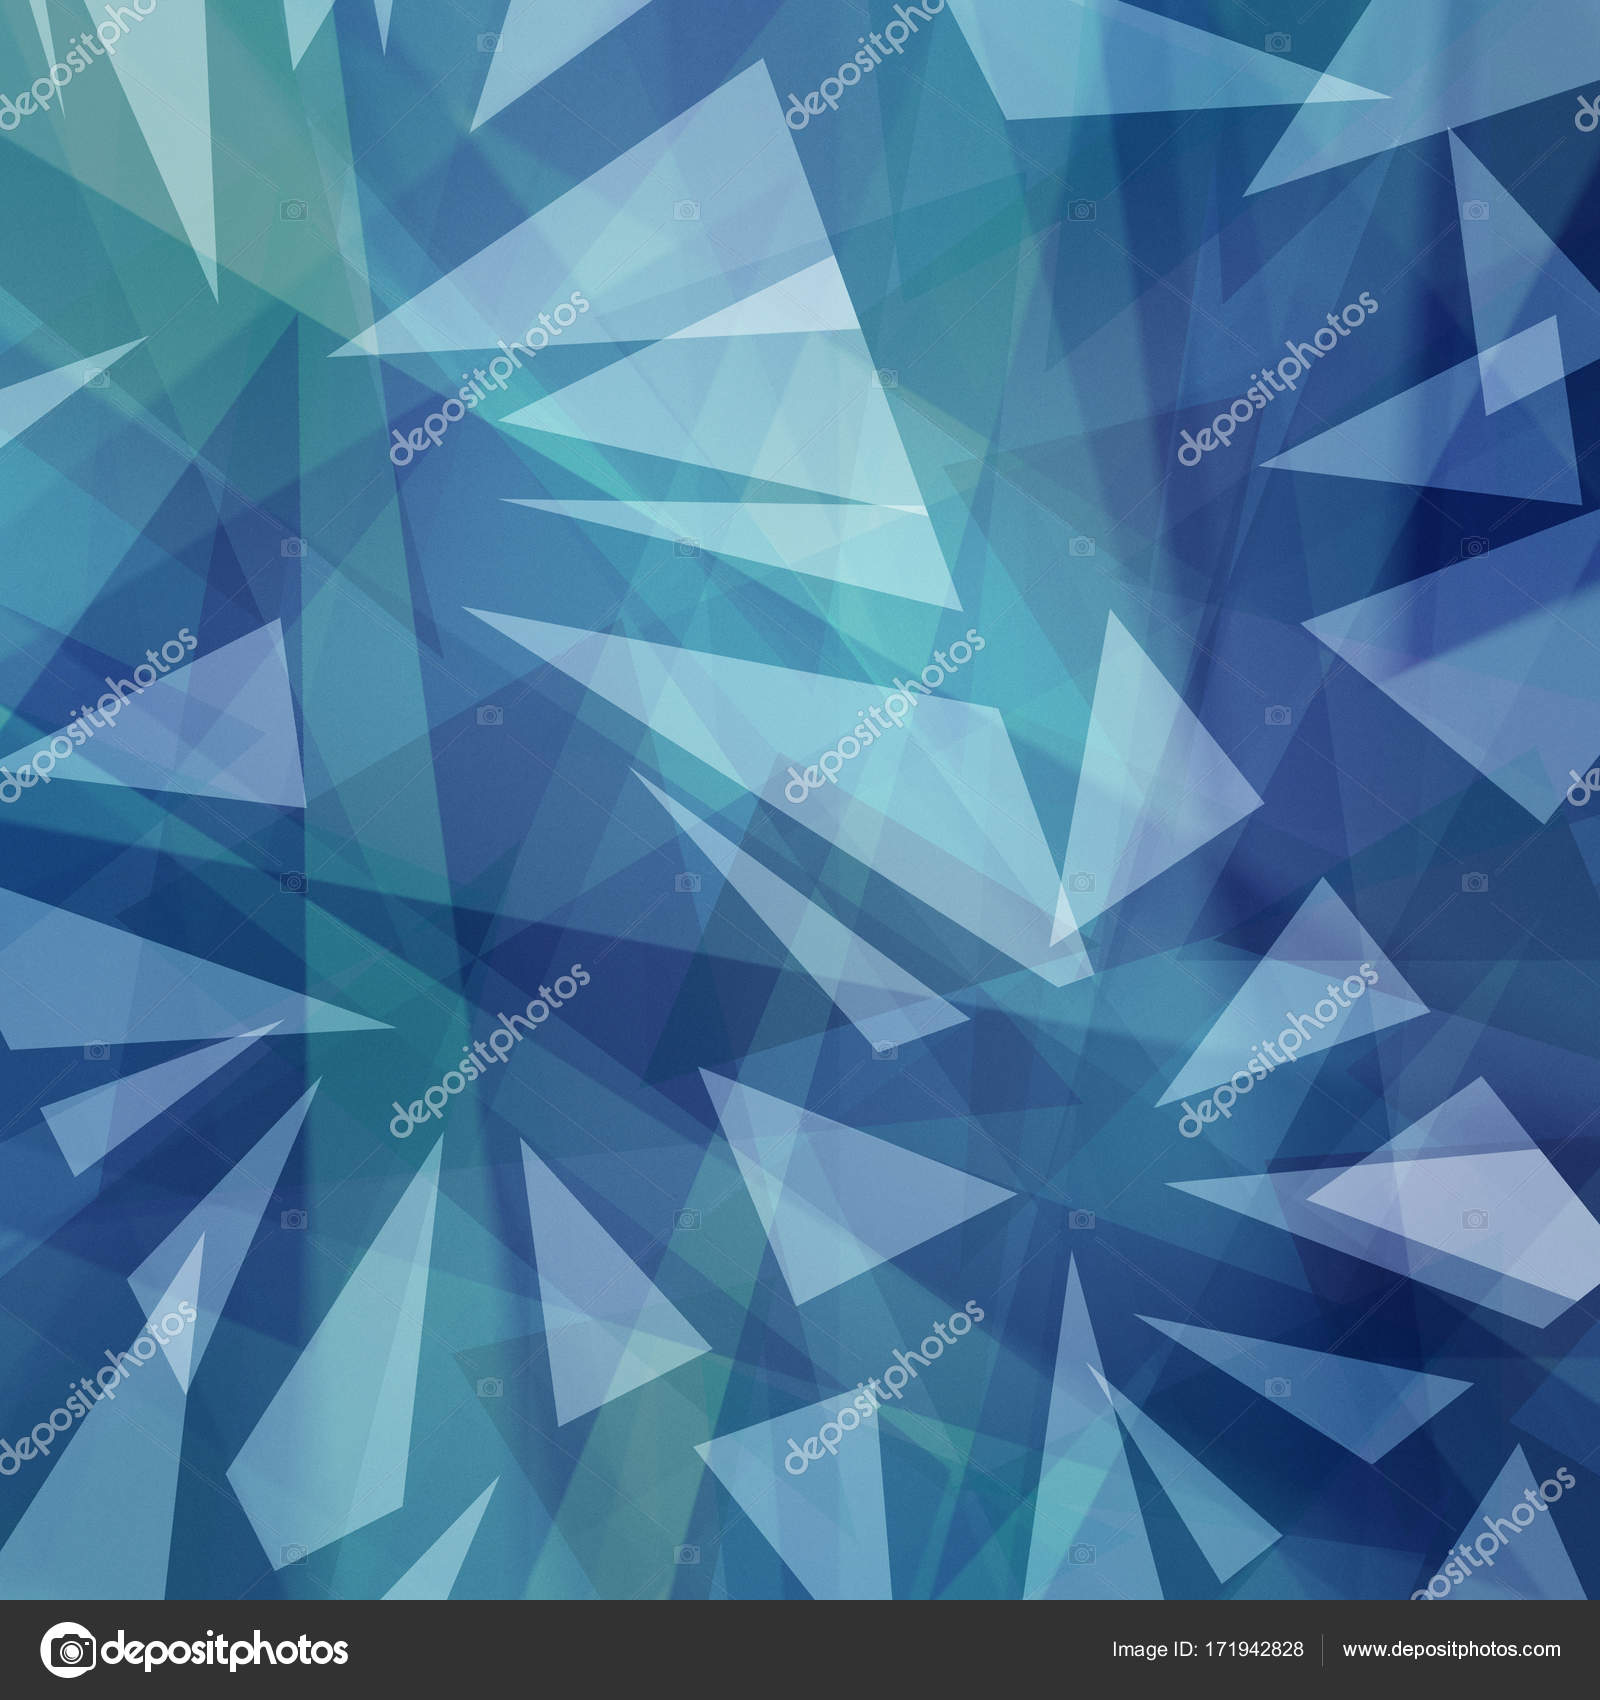 Abstract Triangle Shapes Layered In Random Pattern Purple Blue And White Background Modern Art Style Transparent Geometric Shard Design Photo By